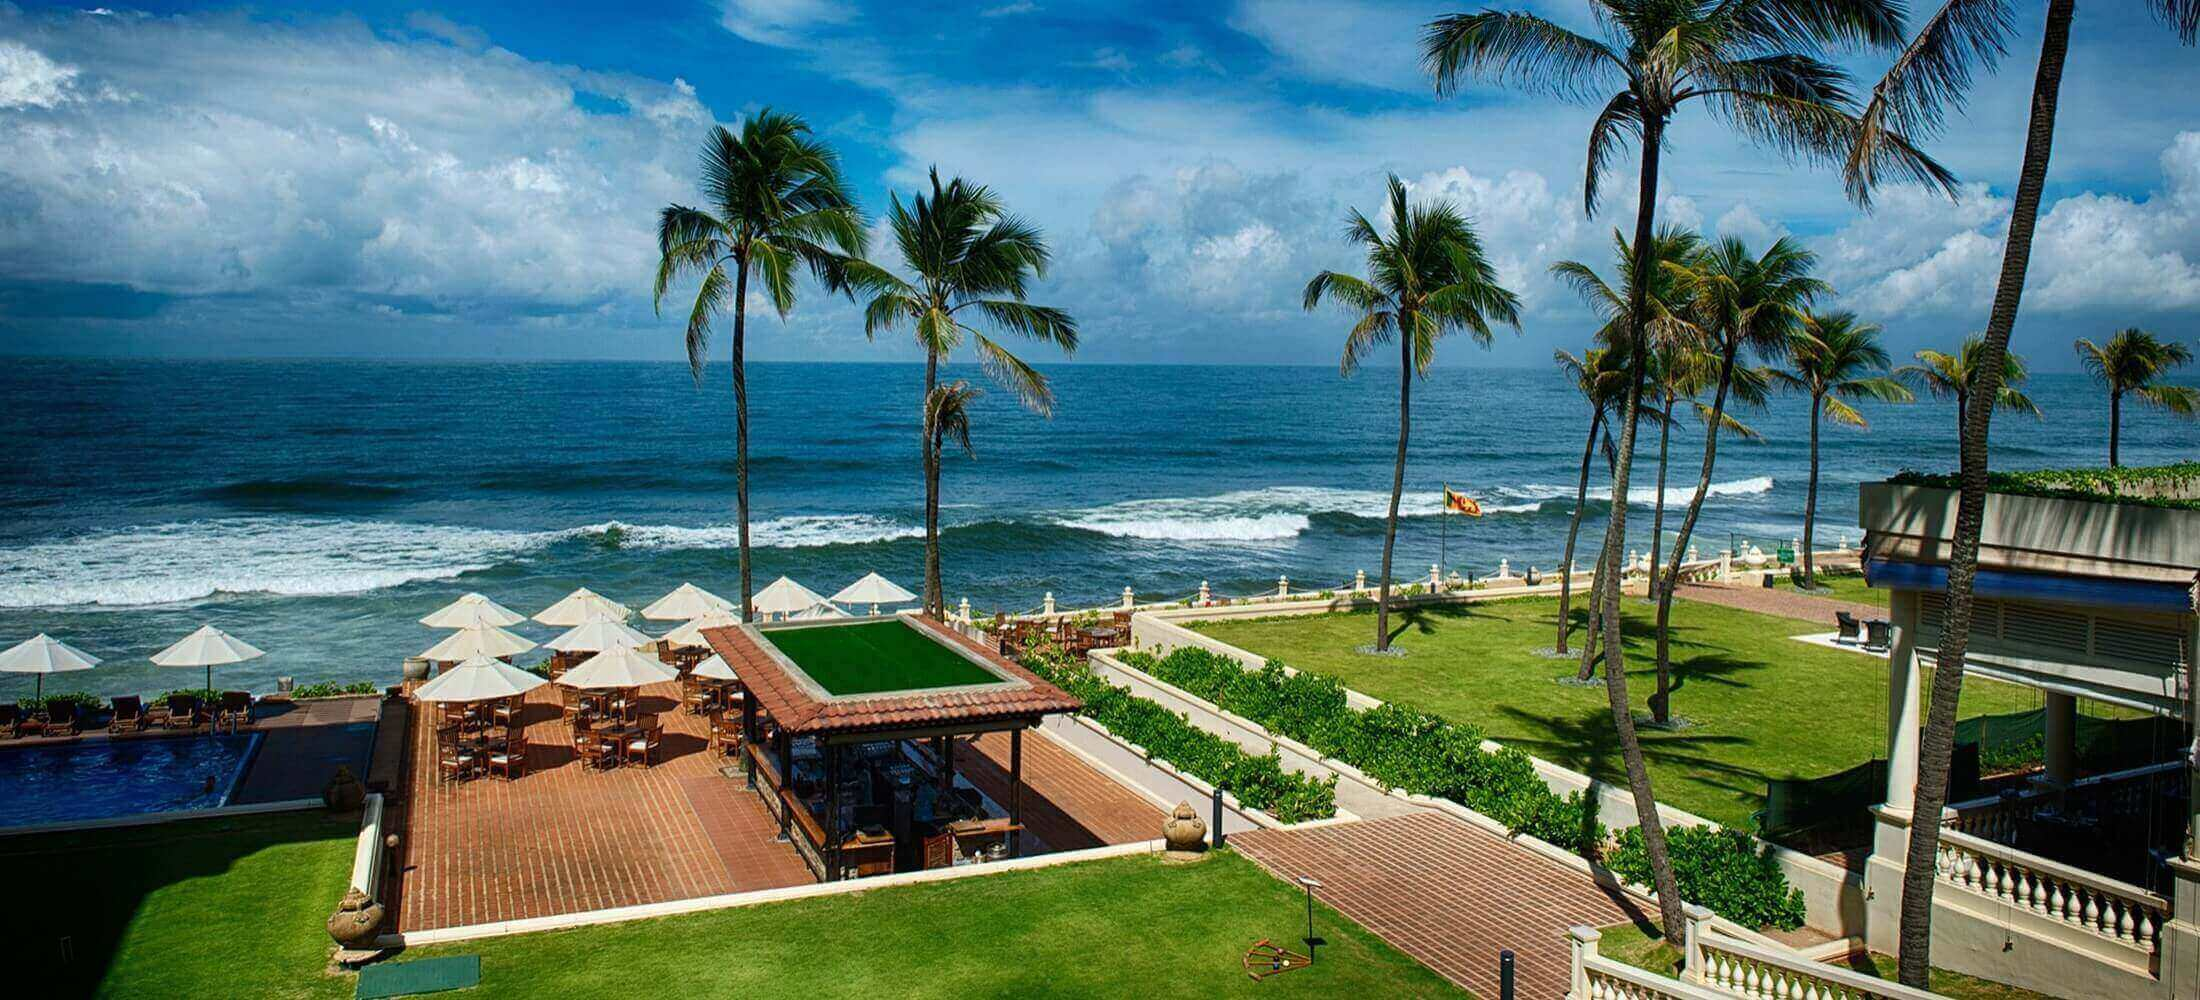 Galle Face Green Colombo, Galle Face Hotel Colombo | OFFICIAL SITE | Seafront Hotel Sri Lanka